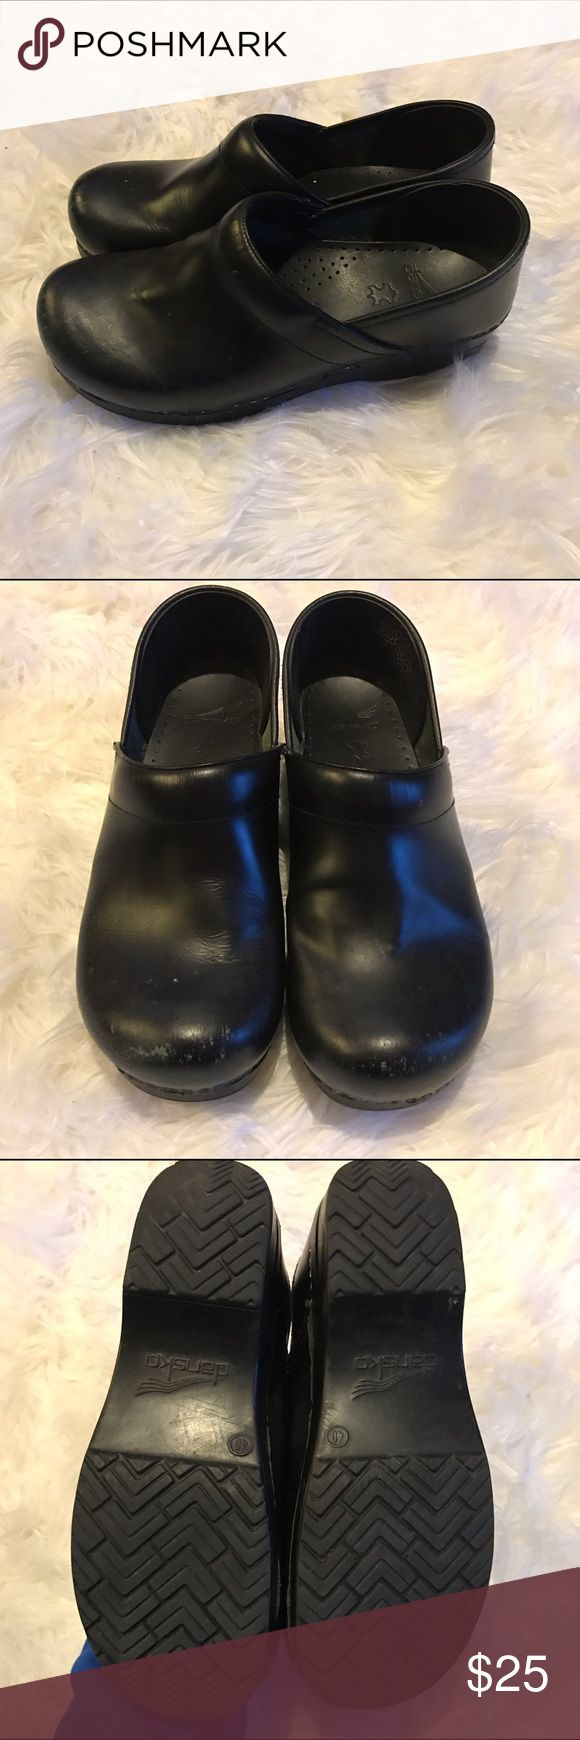 Classic black danskos. ECU. Size 40 Classic black danskos in good condition besides wear on toes. Women's size 40 Dansko Shoes Mules & Clogs